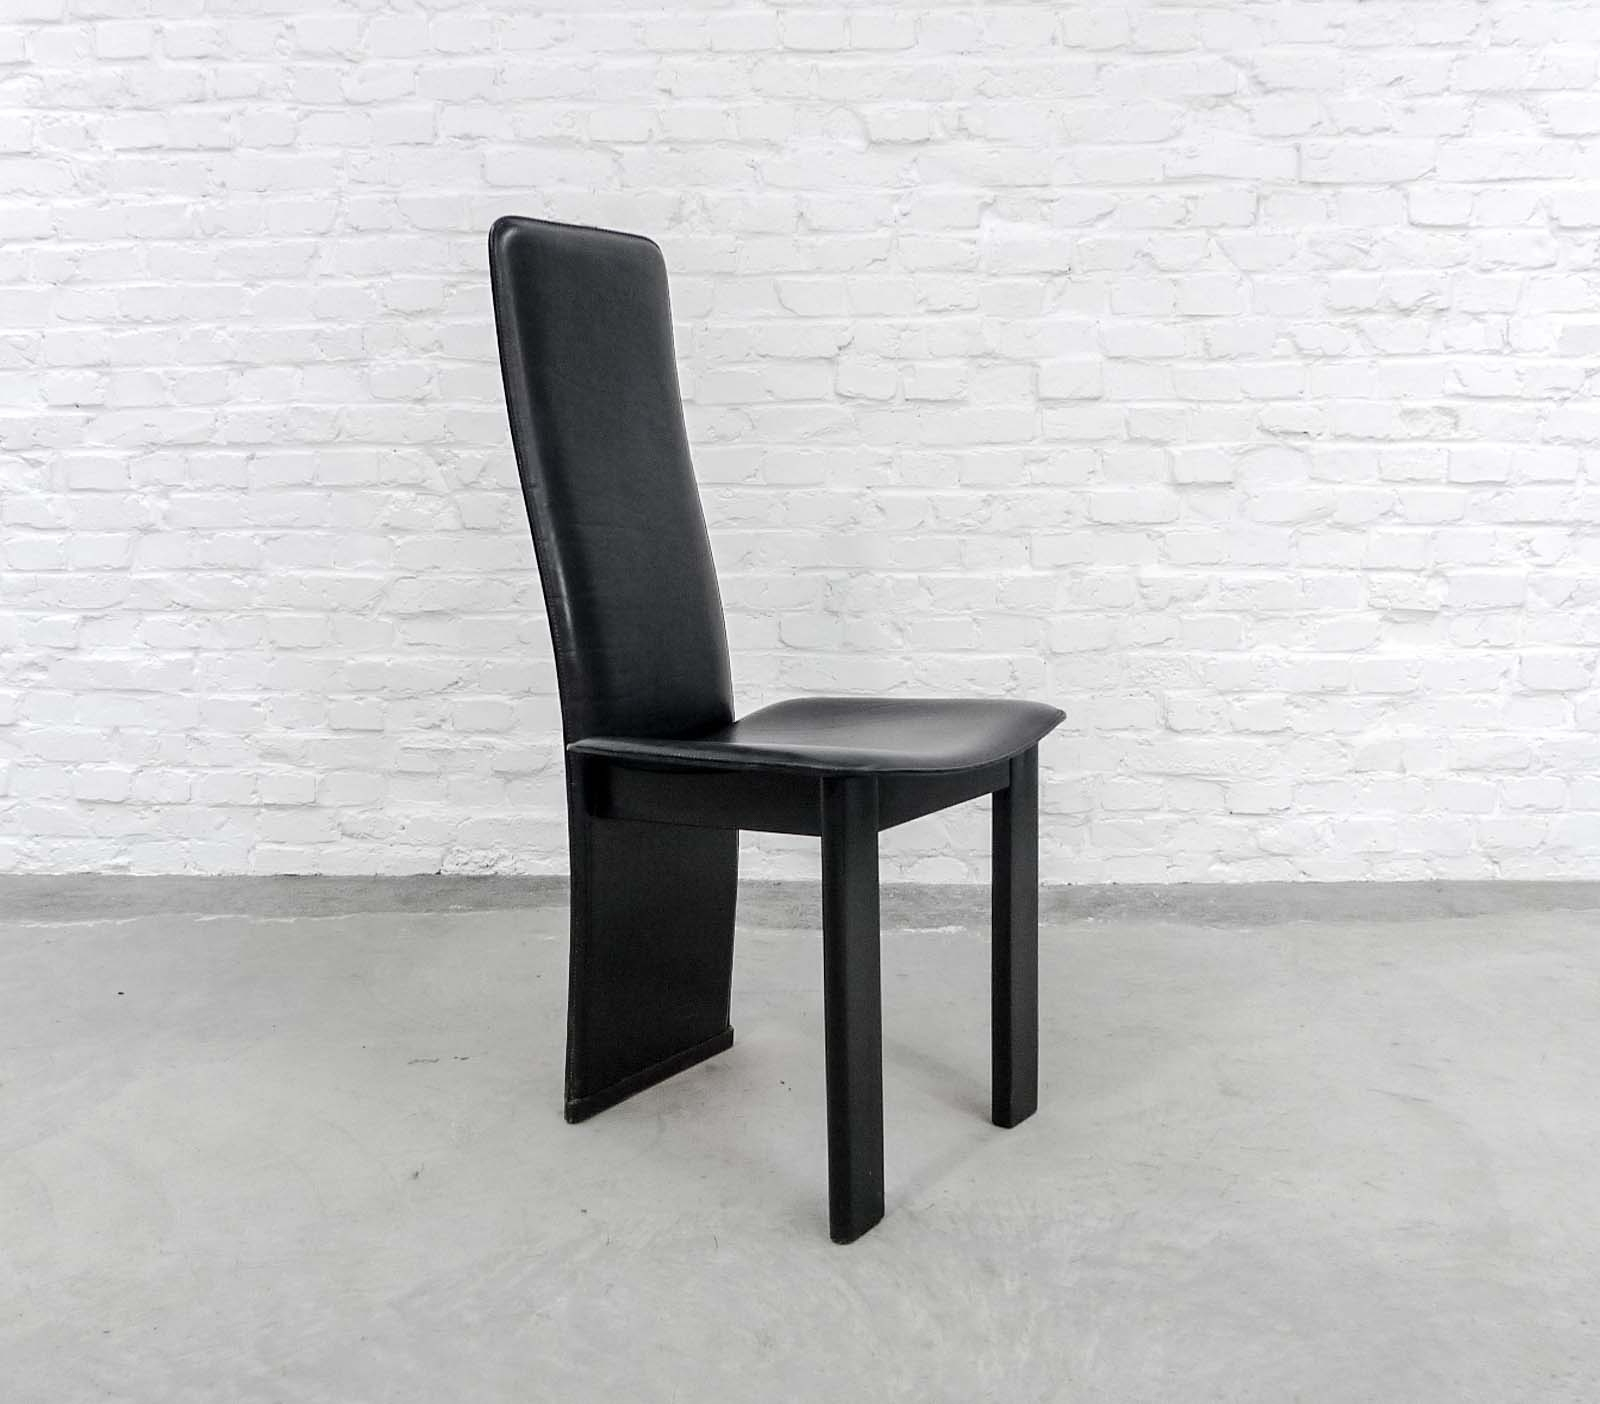 Preferred Set Of 4 Mid Century Black Sadle Leather High Back Dining Chairs In Throughout High Back Leather Dining Chairs (View 19 of 25)